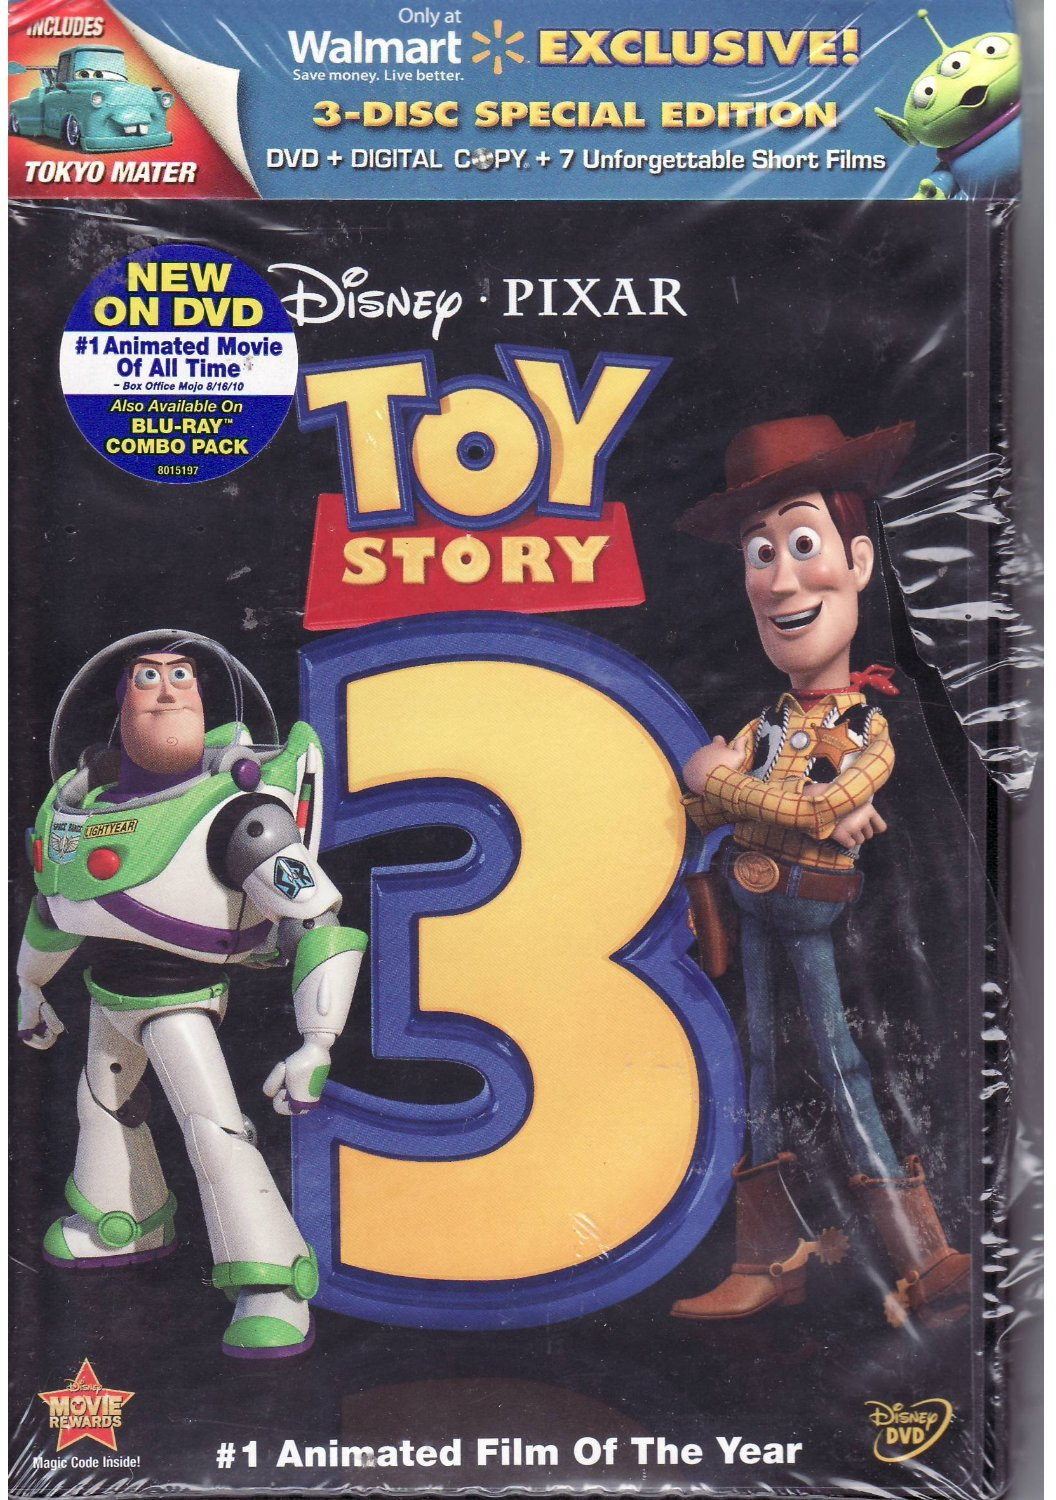 bluray  dvd exclusives toy story 3 walmart exclusive 3